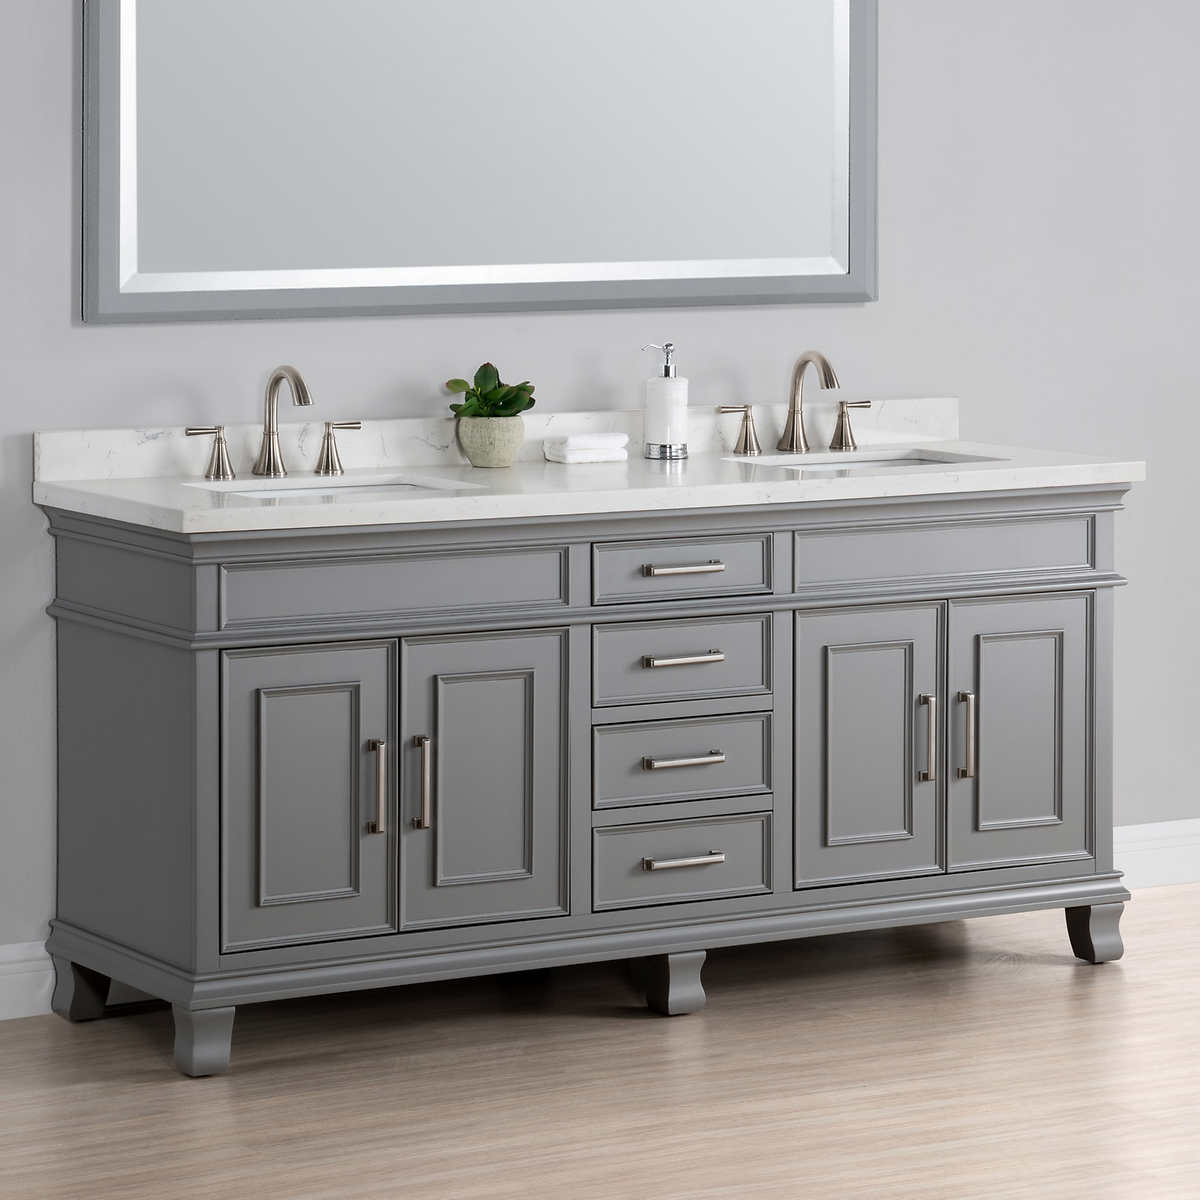 Delectable 90 Vanity Bathroom Double Sink Inspiration Of Best 25 Double Sink Vanity Ideas Only